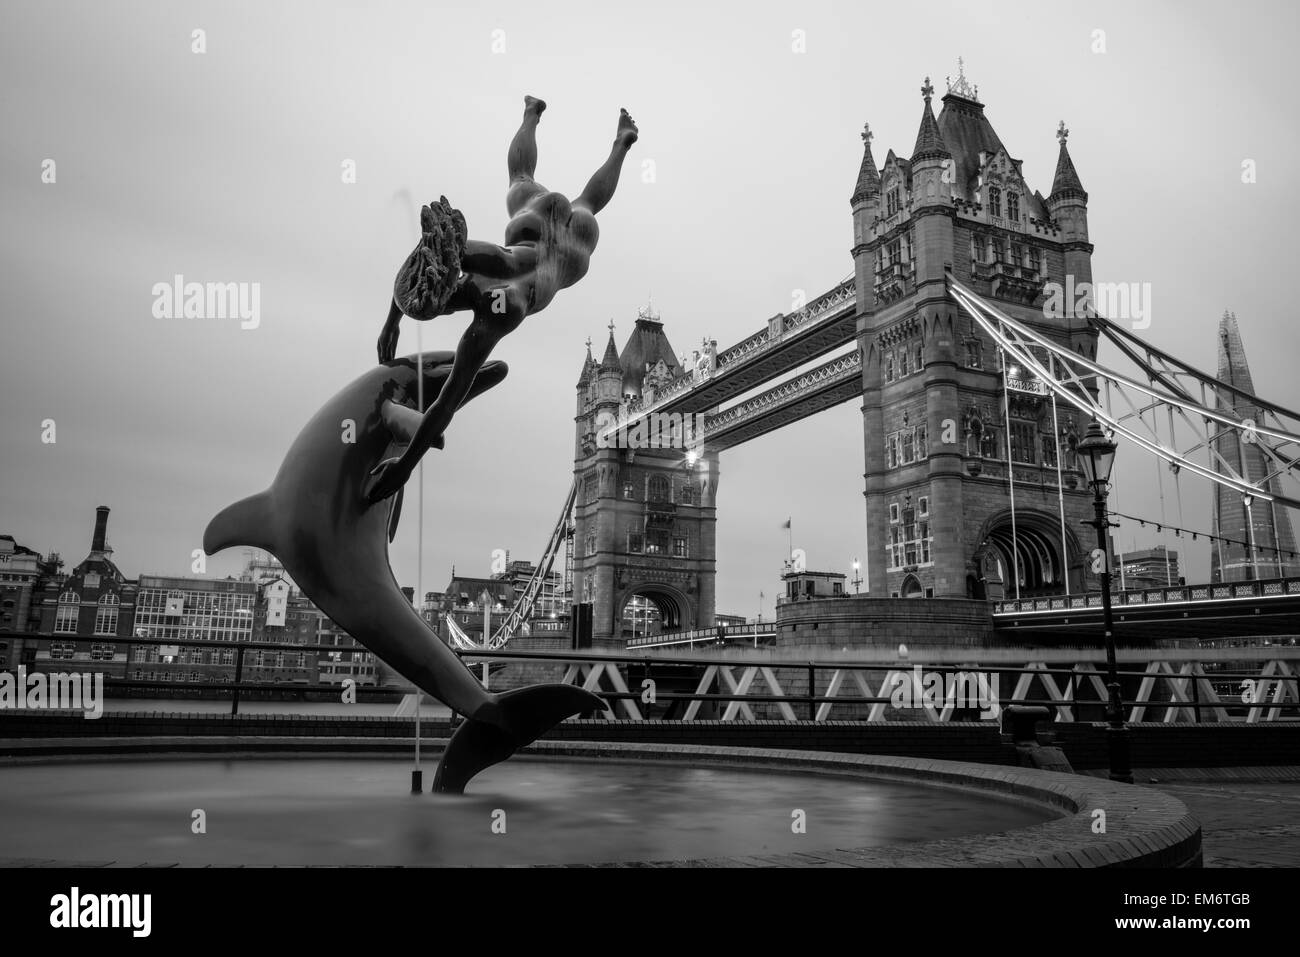 London Tower Bridge on the Thames River. It is an iconic symbol of London, United Kingdom. - Stock Image